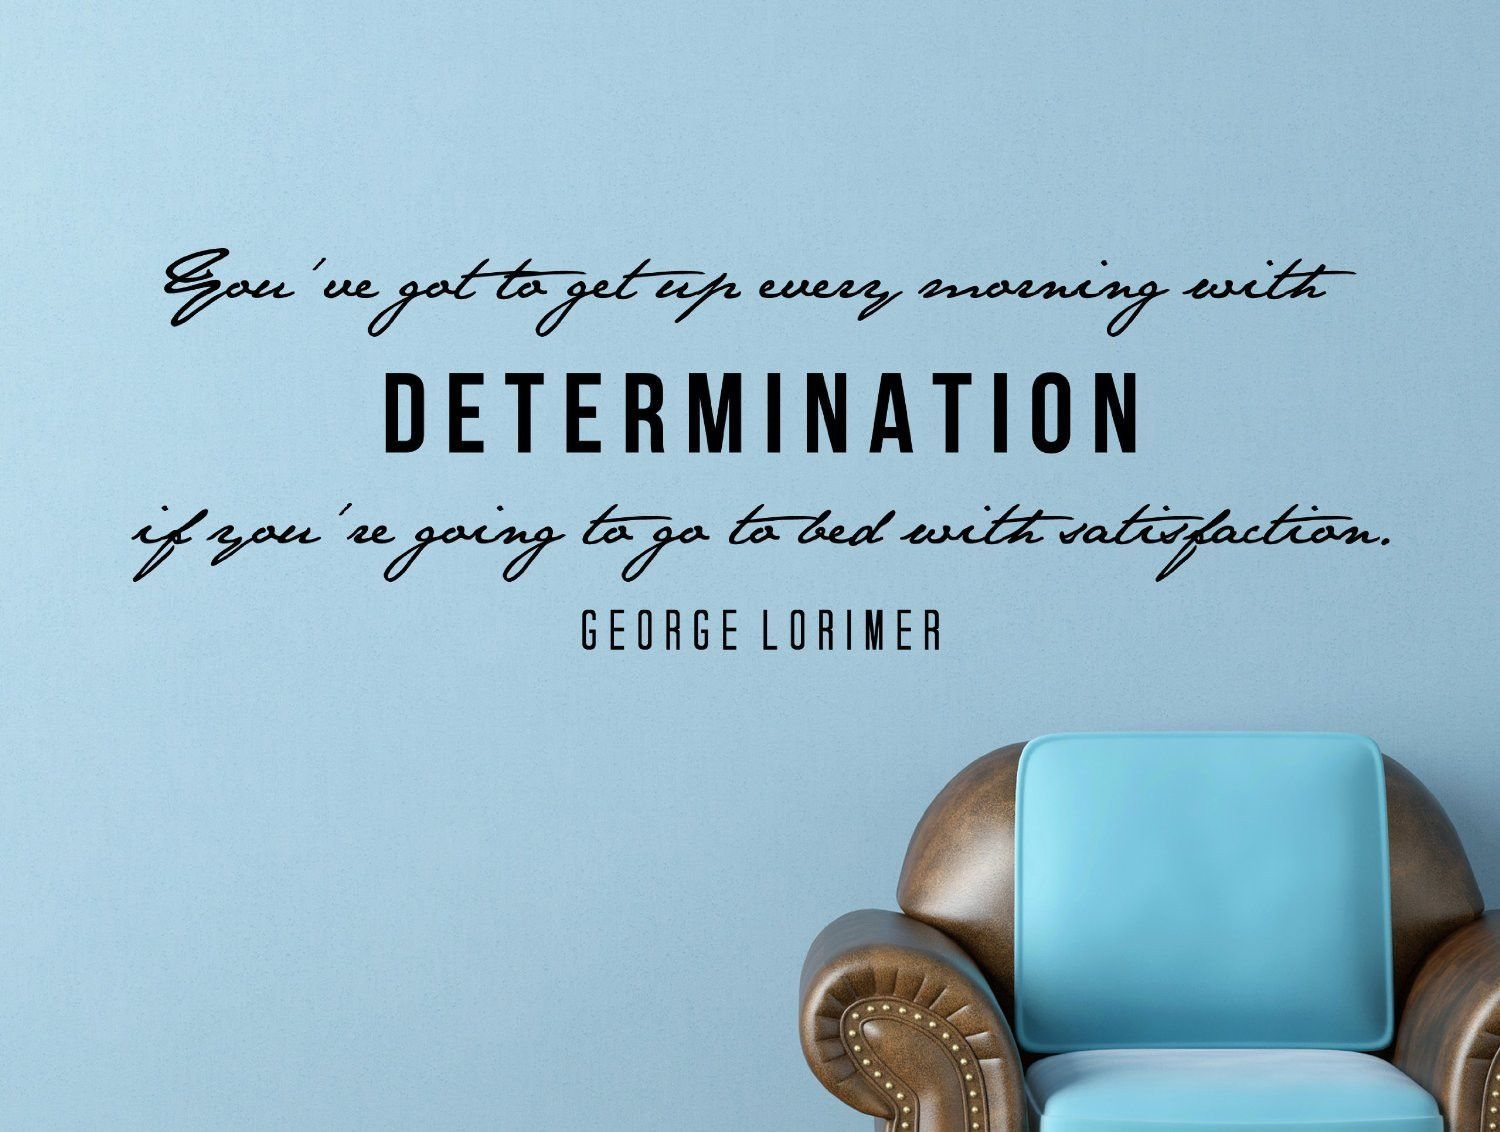 Daily Motivational Quotes For Work George Lorimer Motivational Business Quote Wall Decal  Quote Wall